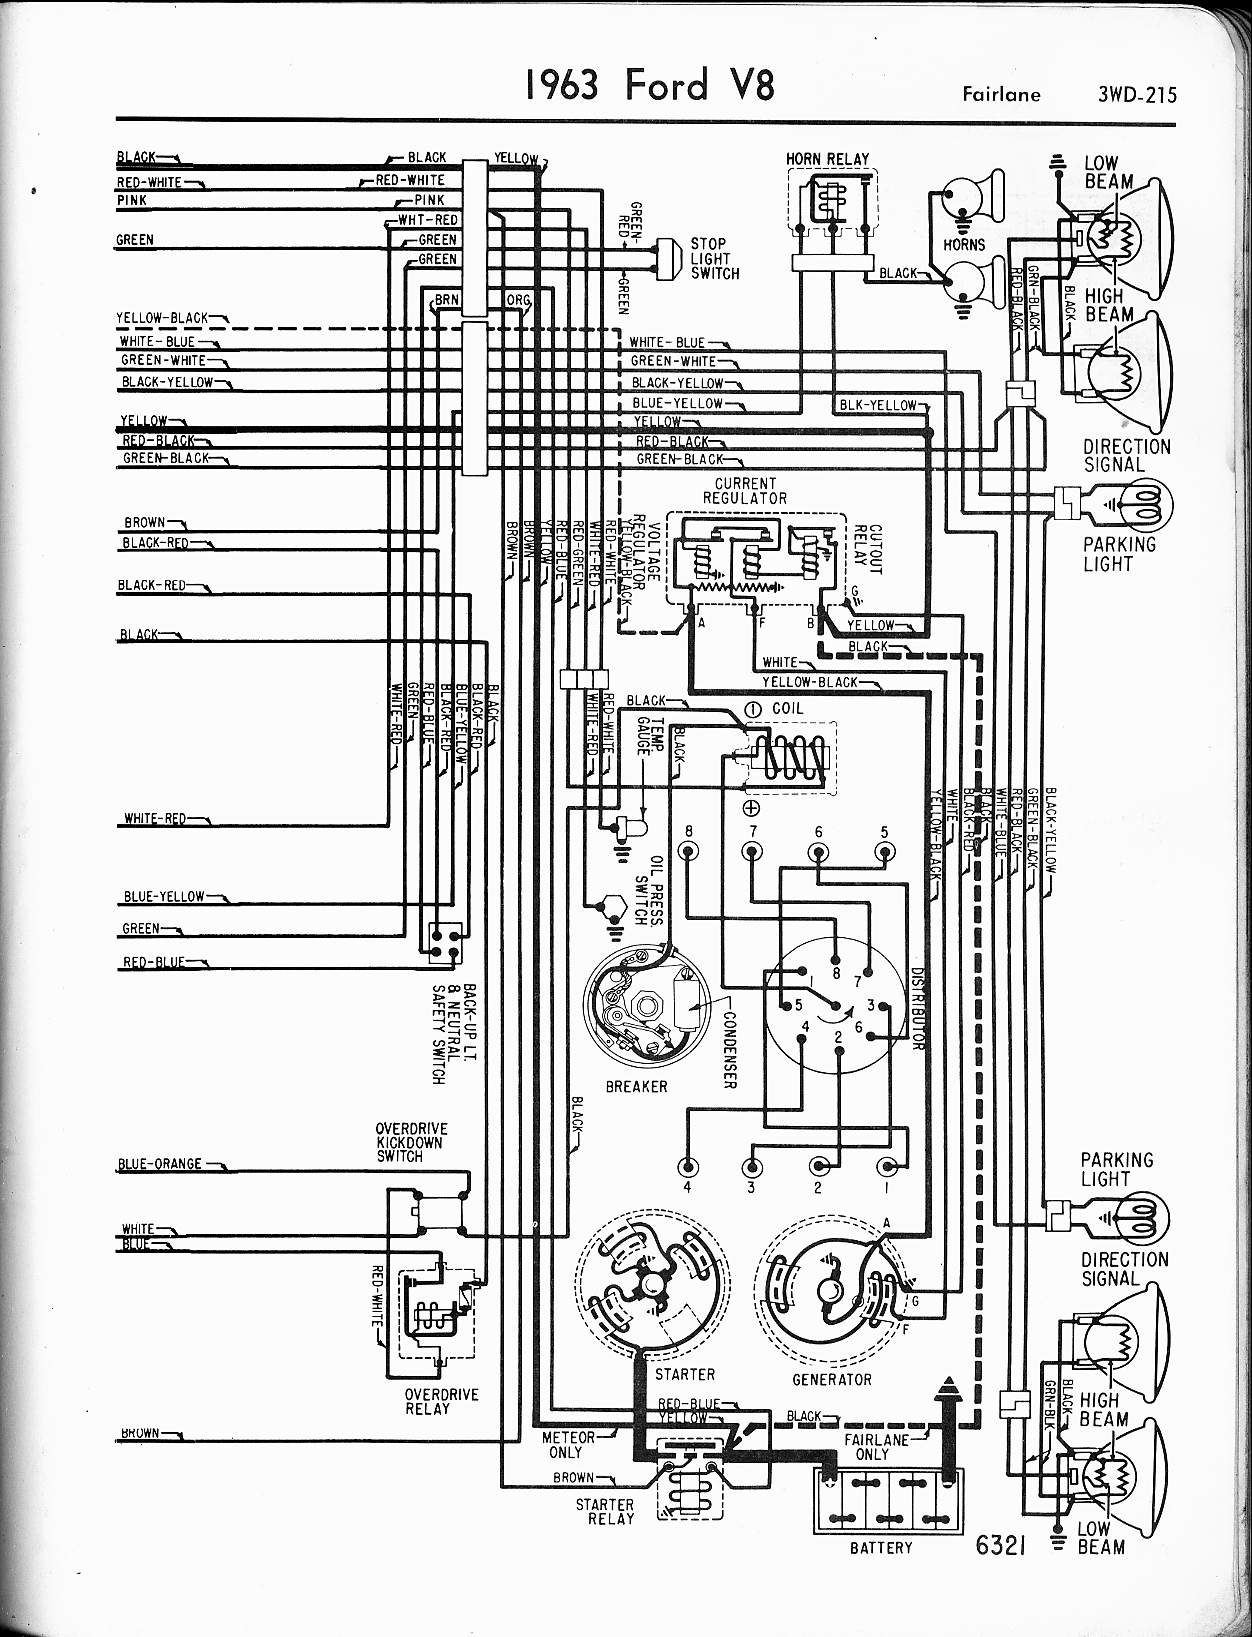 1967 ford econoline wiring diagram online schematics diagram rh delvato co Ford E-150 Wiring-Diagram Basic Turn Signal Wiring Diagram